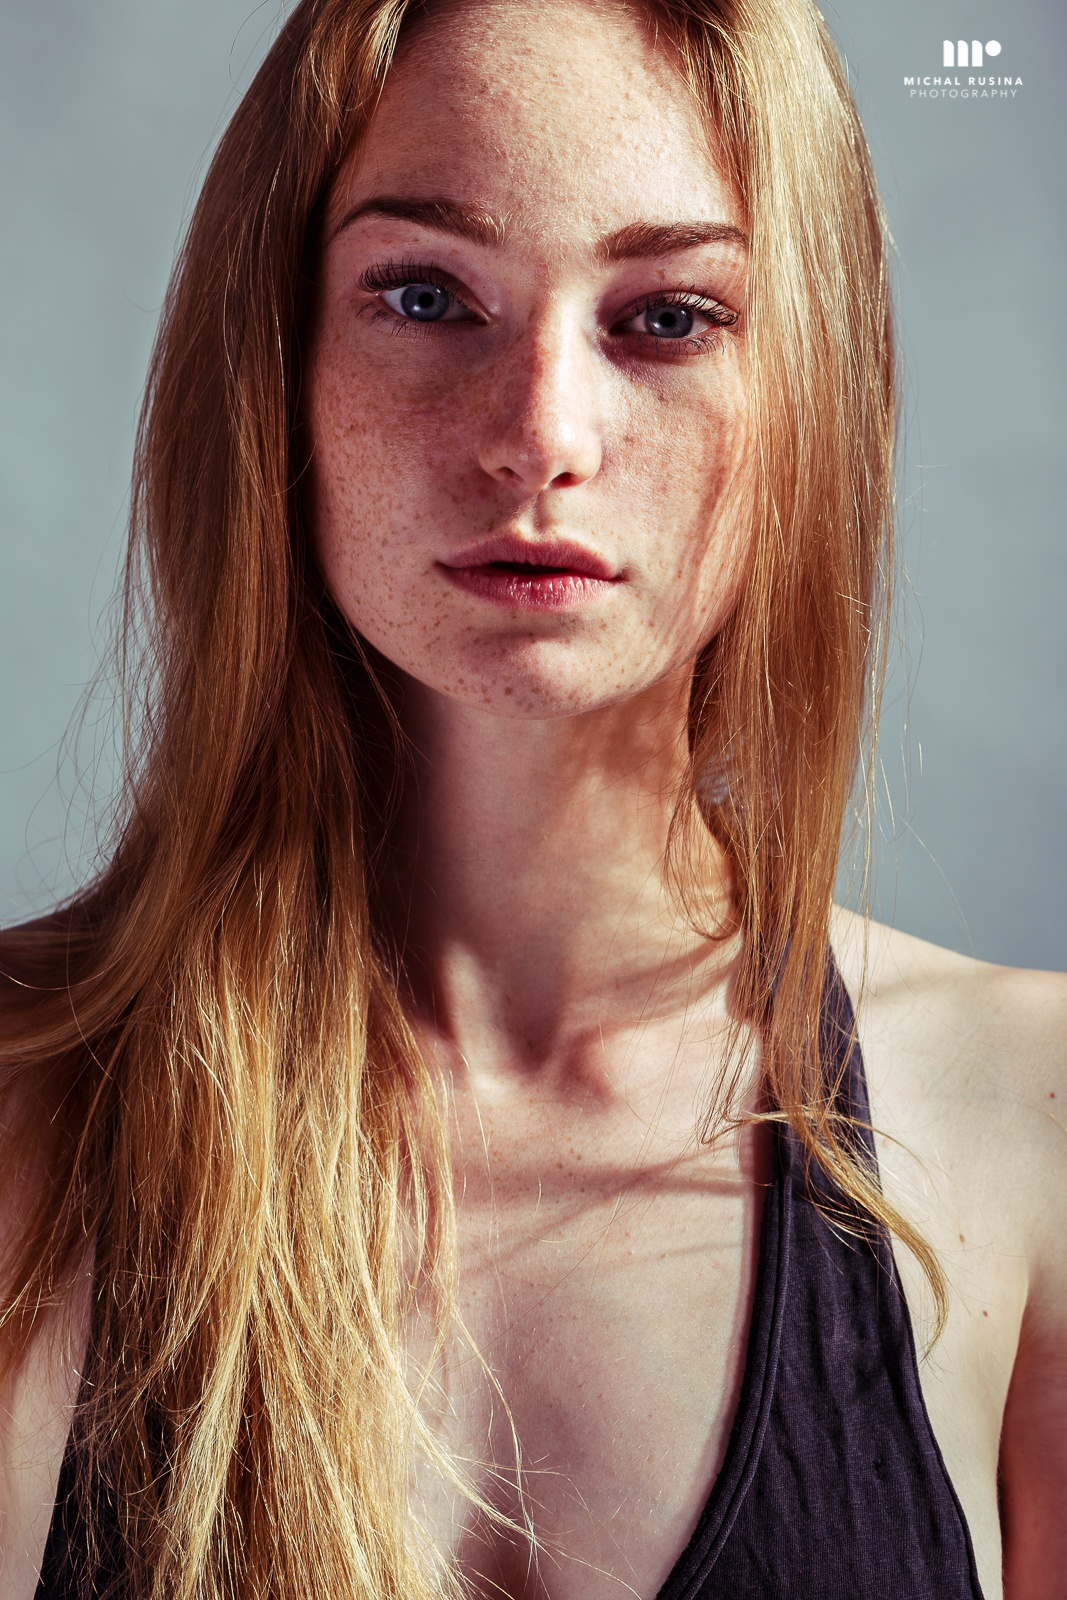 Frederika by Michal Rusina Photography